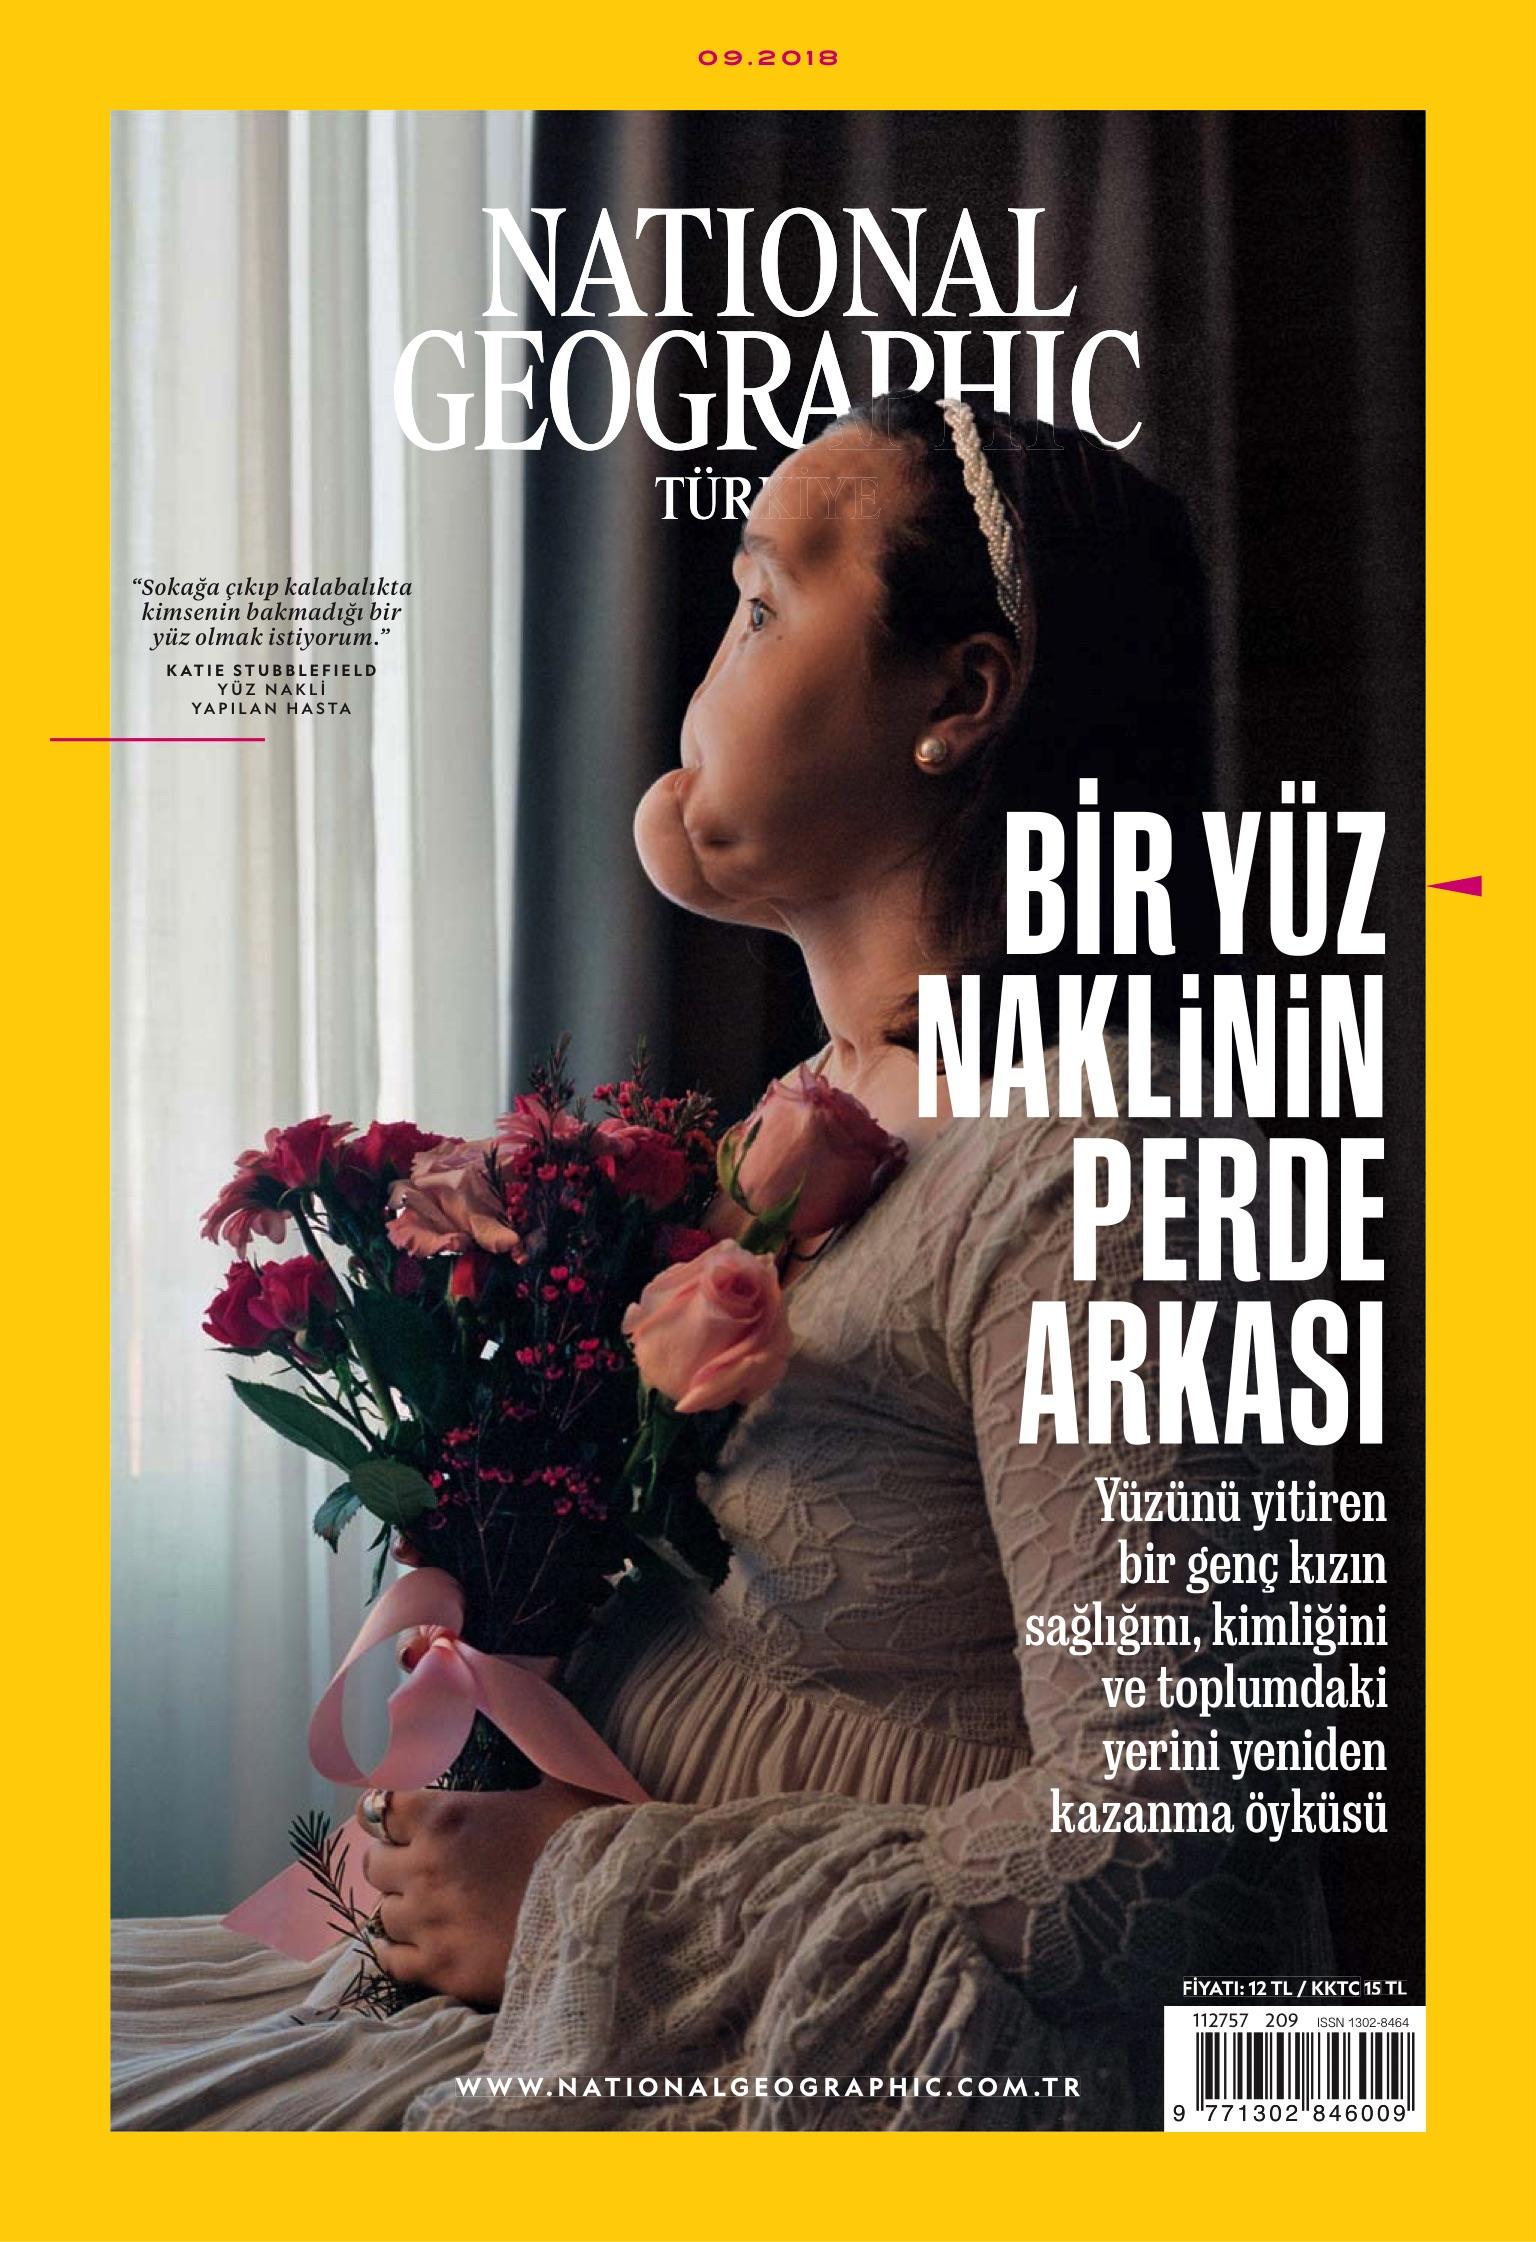 National Geographic Turkiye Eylul 2018 Edergi